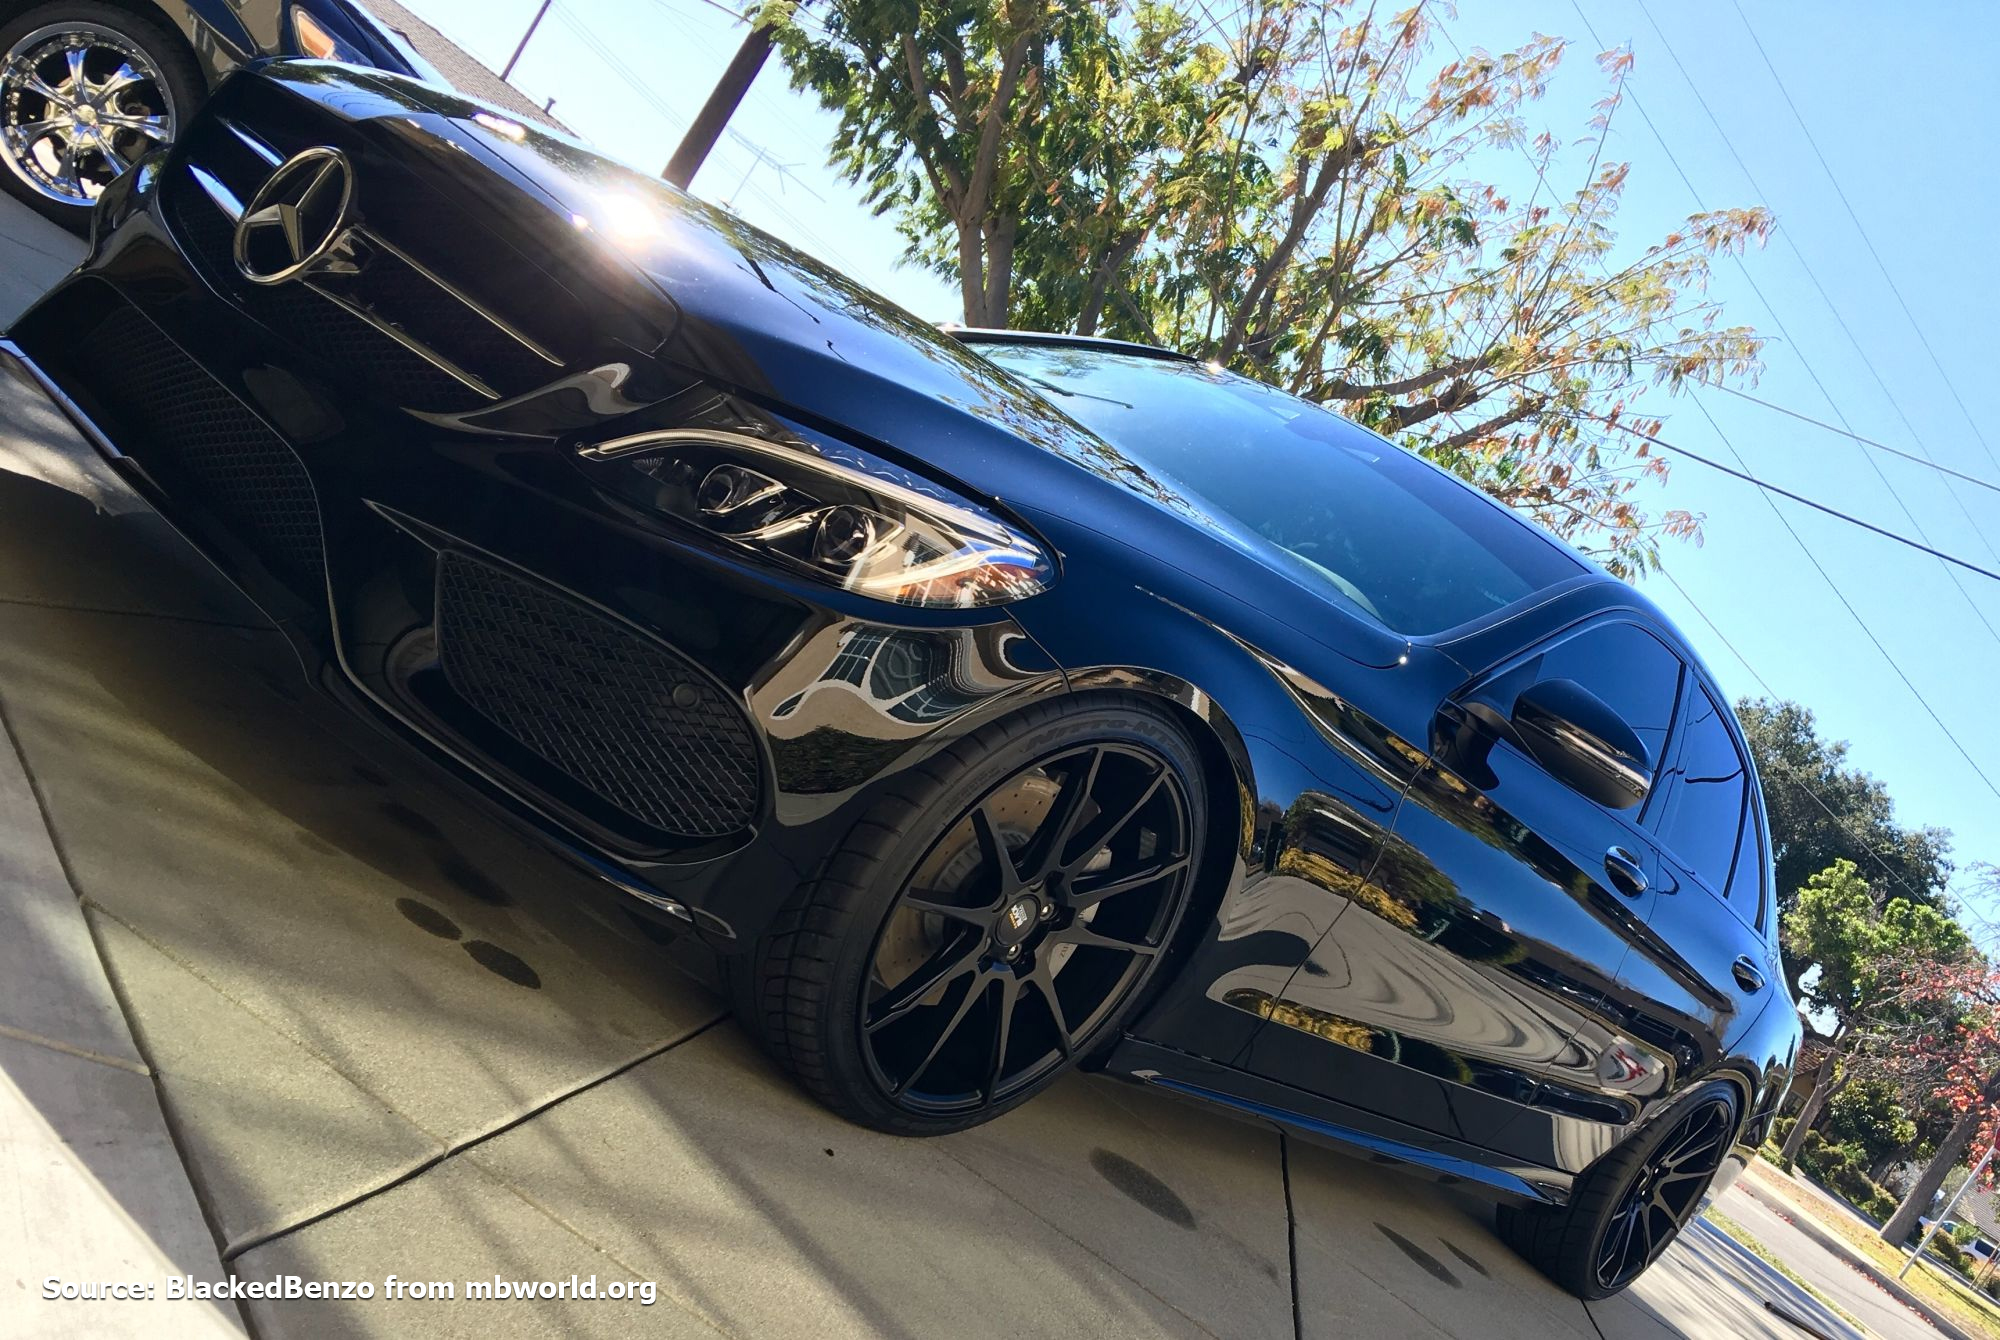 20 Inch Staggered Black Di Forza Bm12 Matte Wheels On 2016 Mercedes C Cl C300 W Specs Element